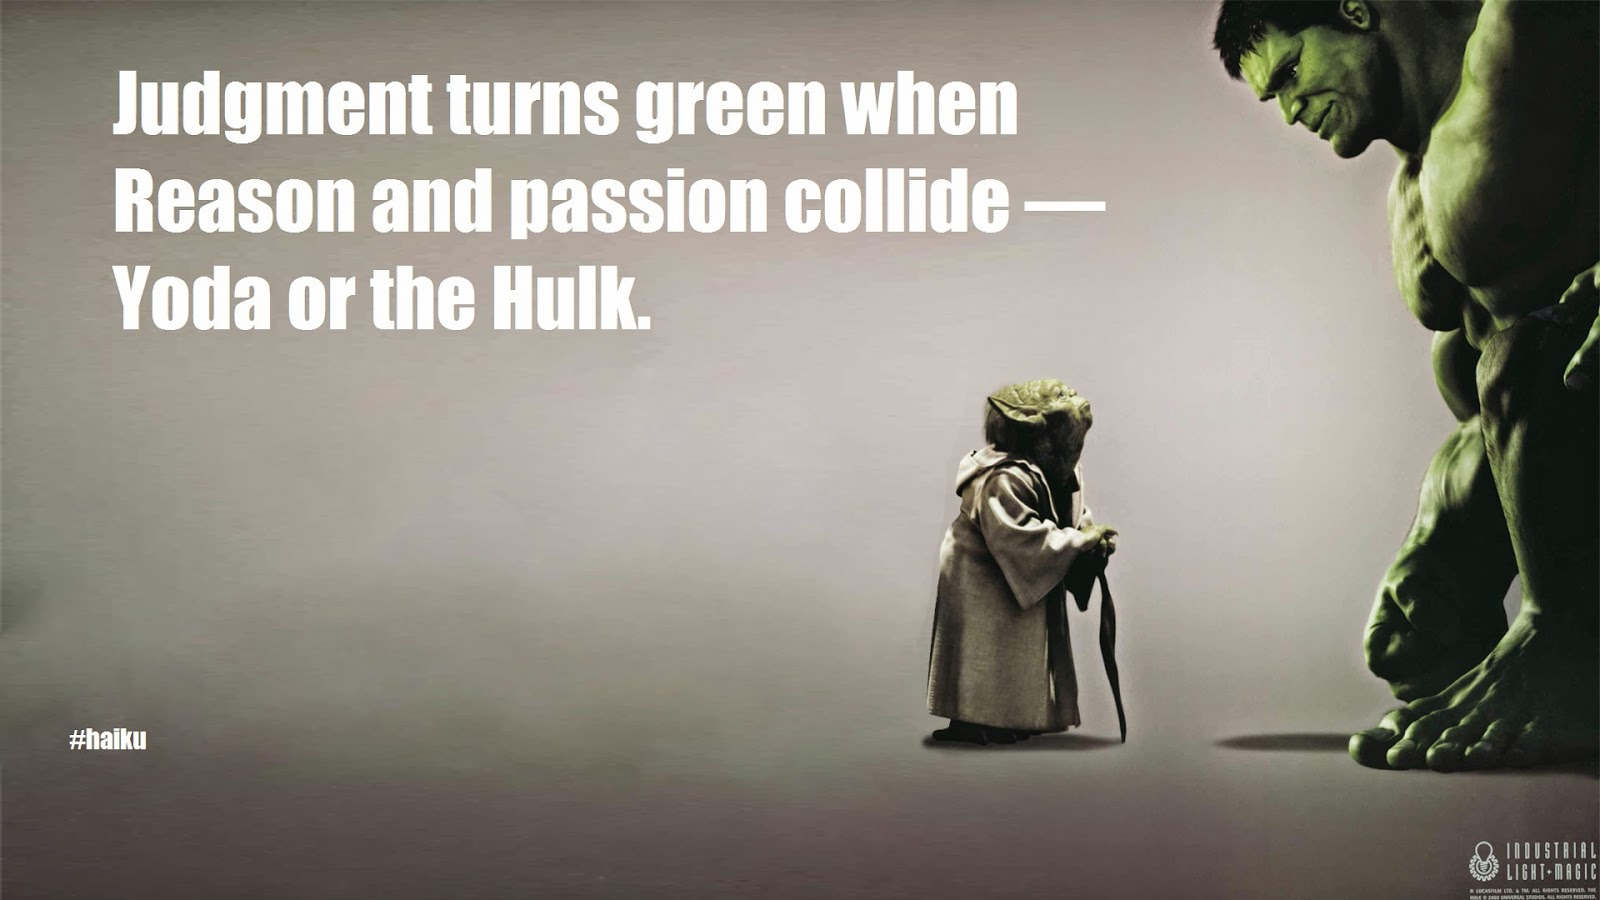 Judgements turns green when reason and passion collide -- Yoda or the Hulk